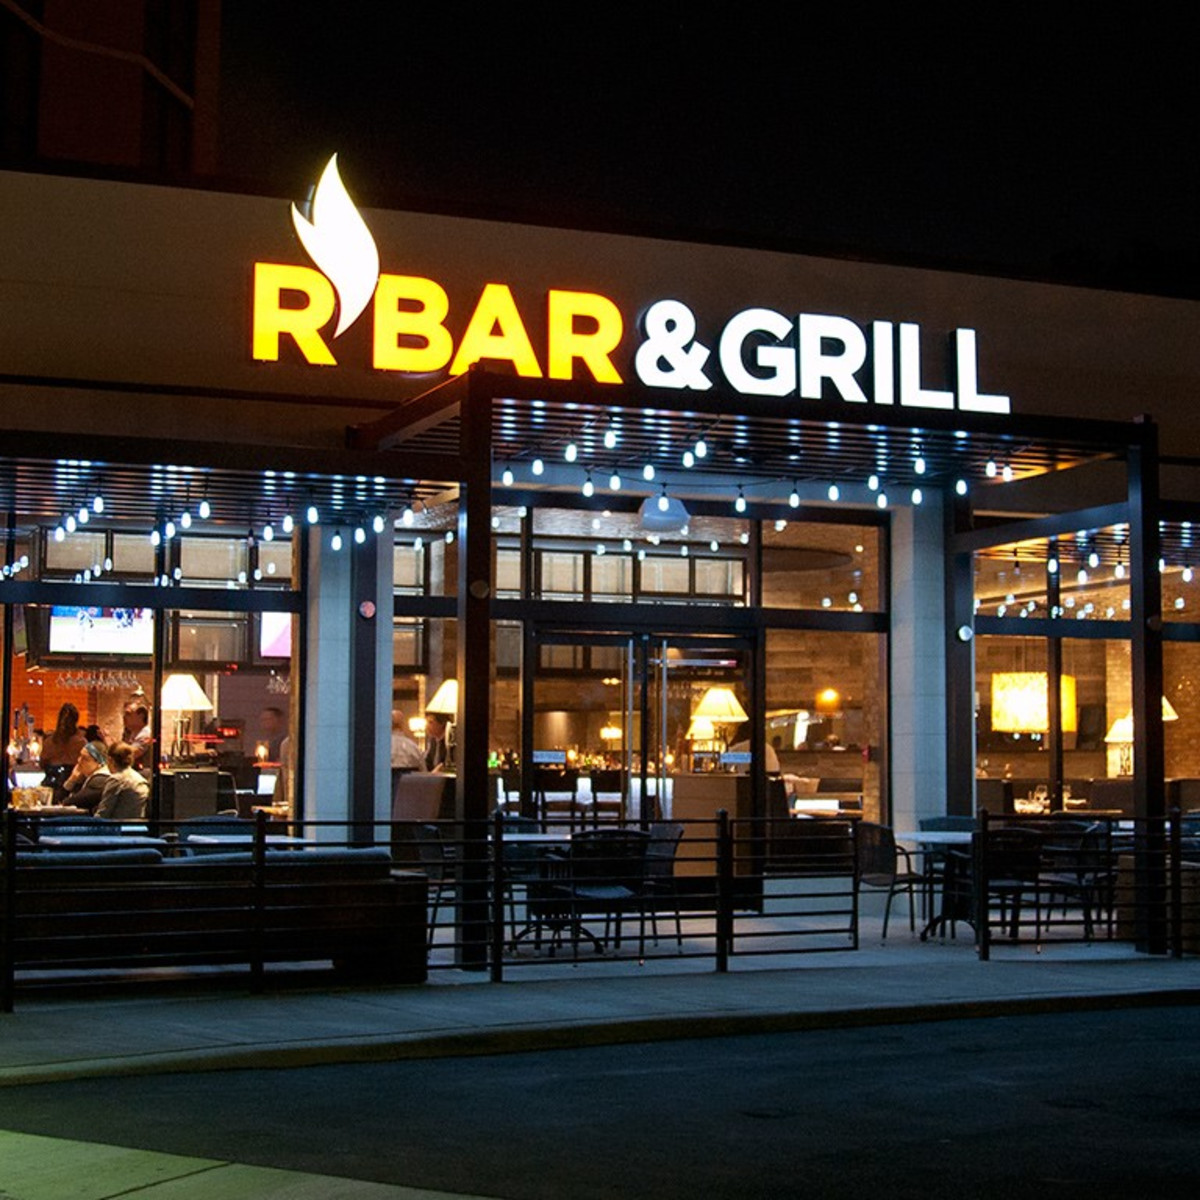 R Bar and Grill